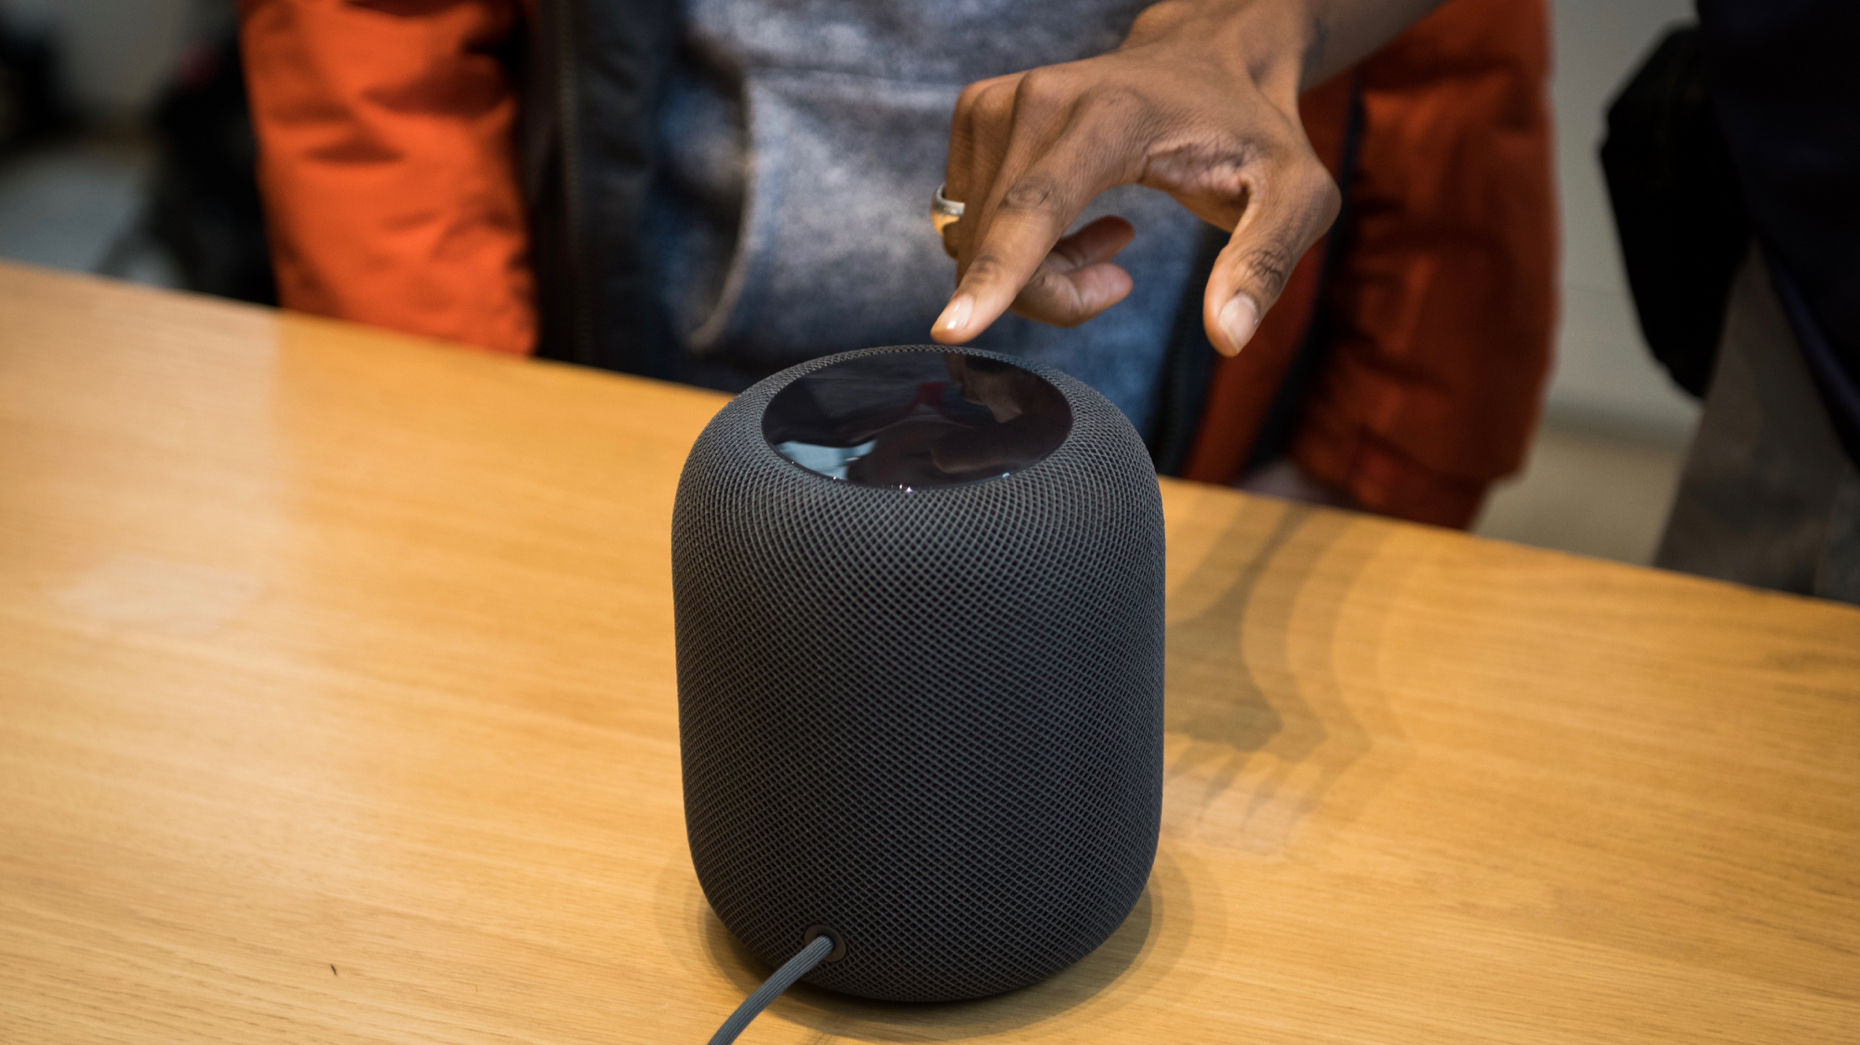 Apple's HomePod. Photo by Bloomberg